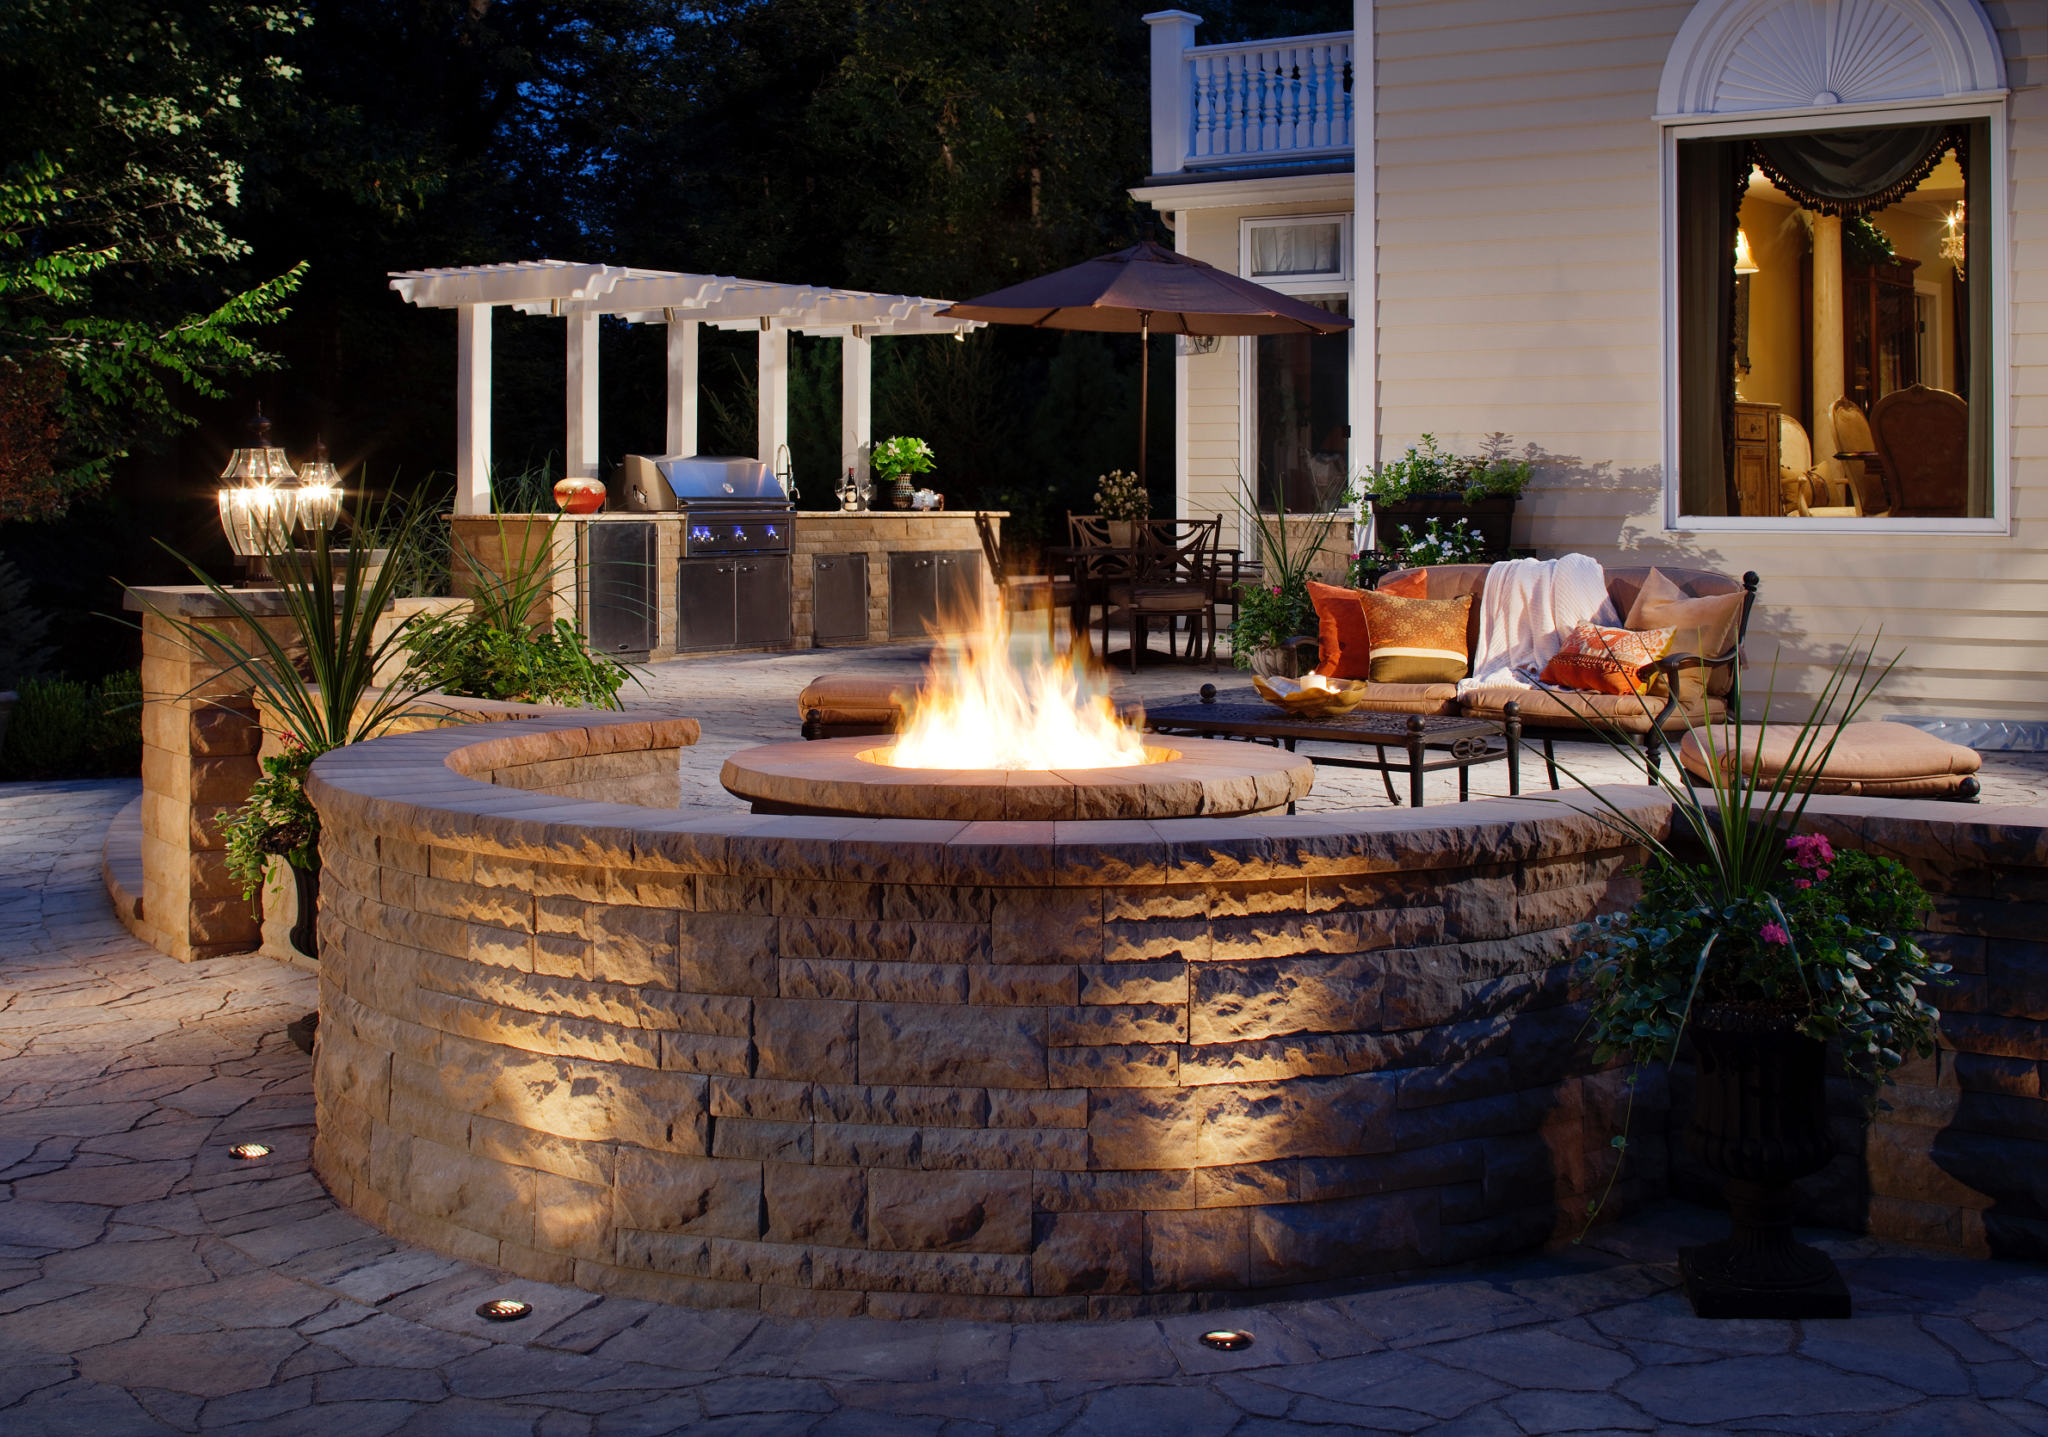 Belgard Mega-Arbel Paver Patio with Belair Wall